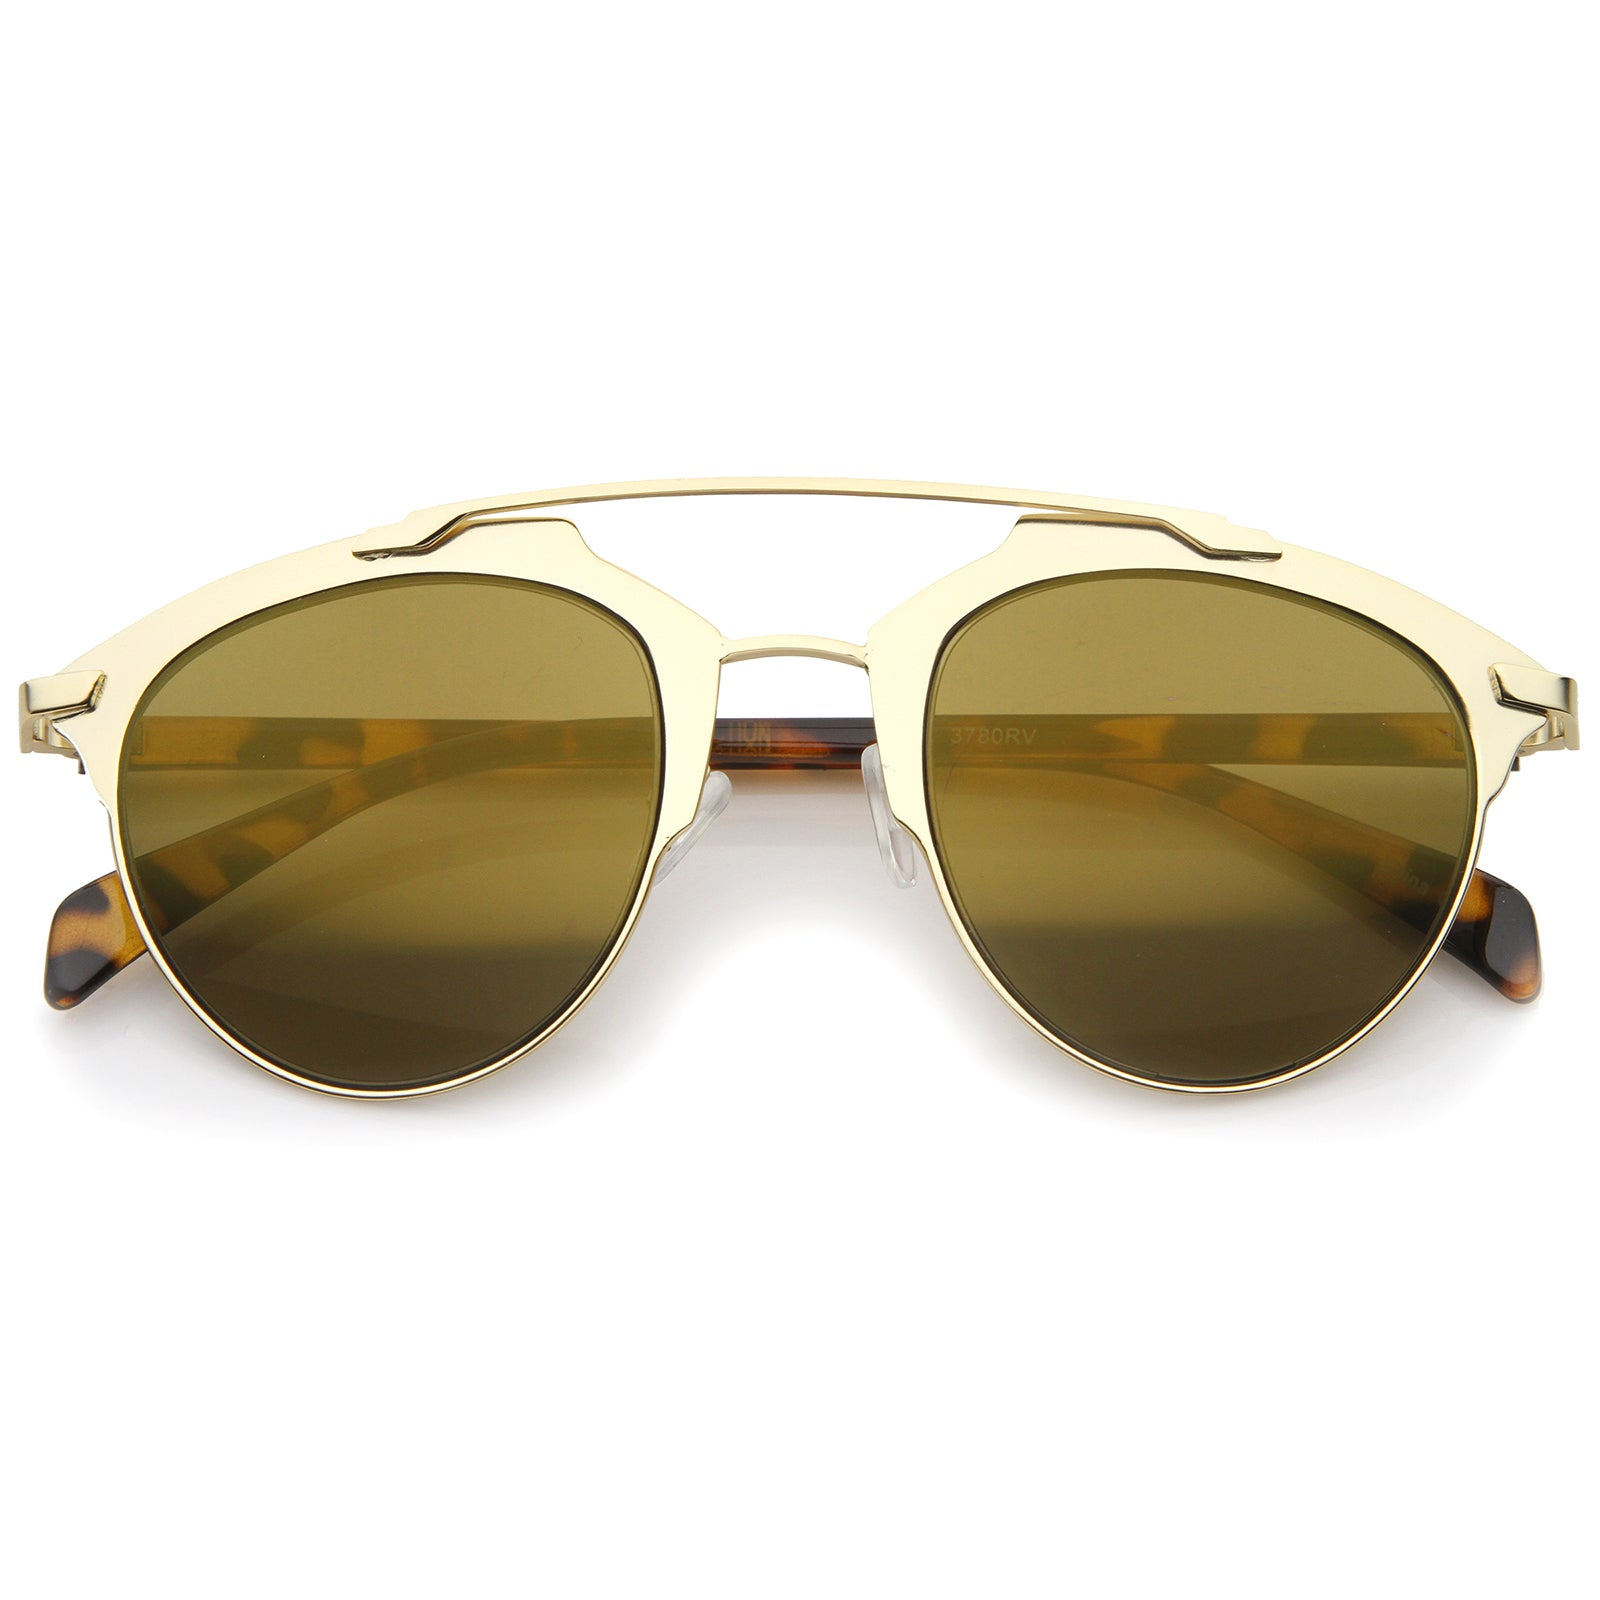 Modern Fashion Metal Double Bridge Mirror Lens Pantos Aviator Sunglasses 50mm - sunglass.la - 5